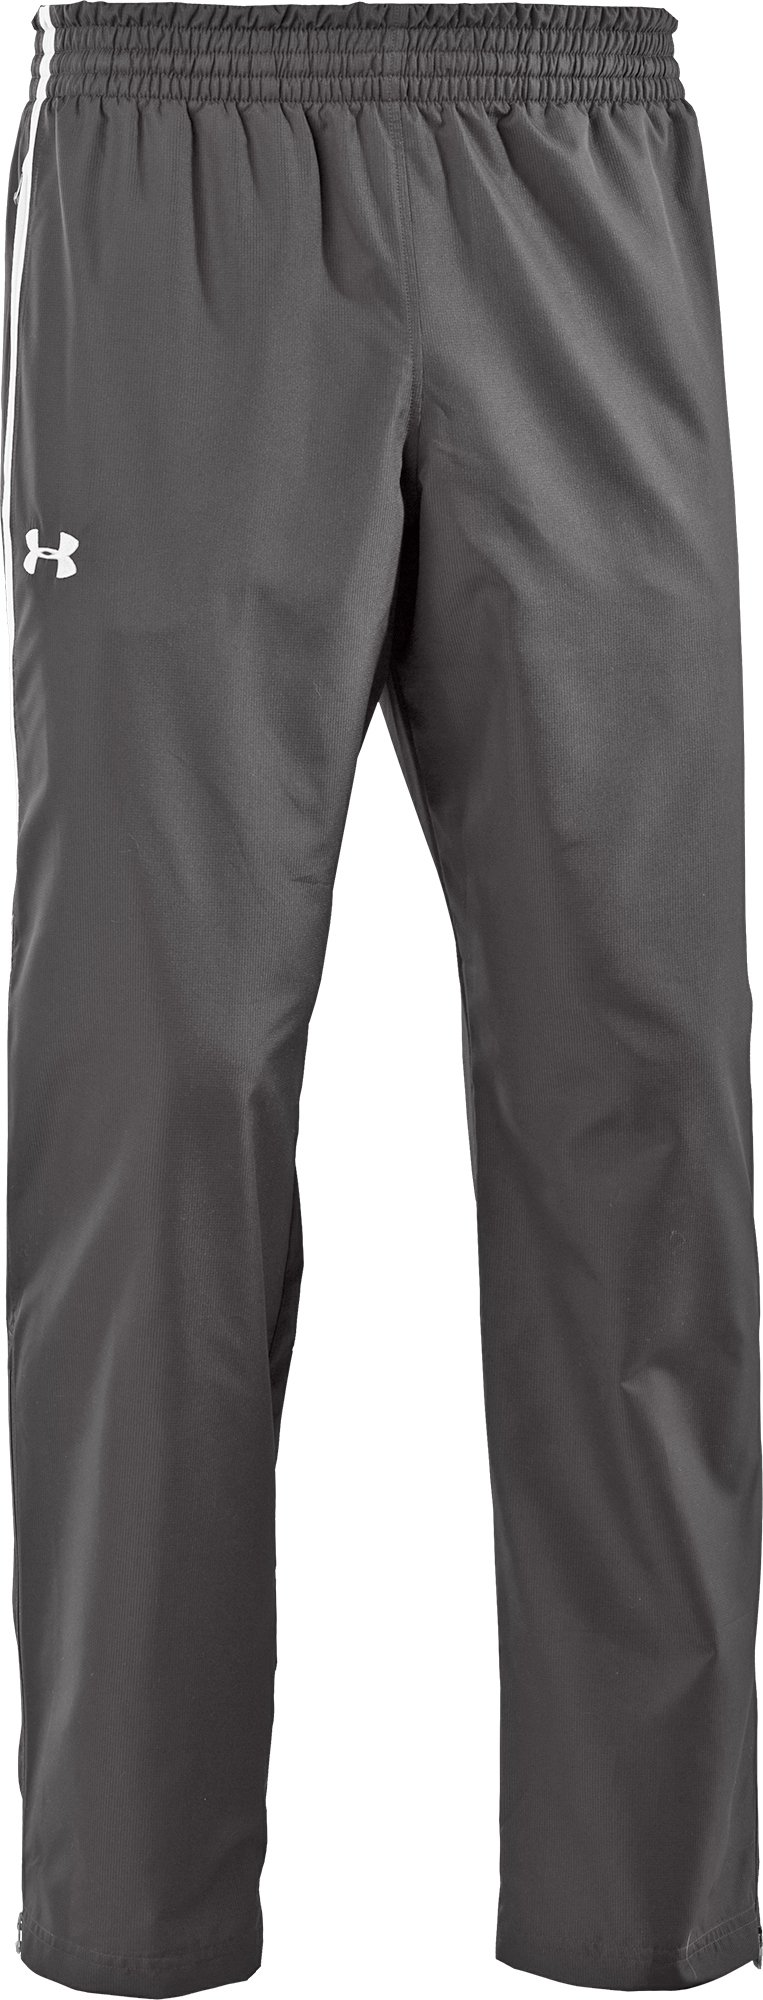 Under Armour Team Essential Woven Men's Warm-Up Pants (Black/White, Small)